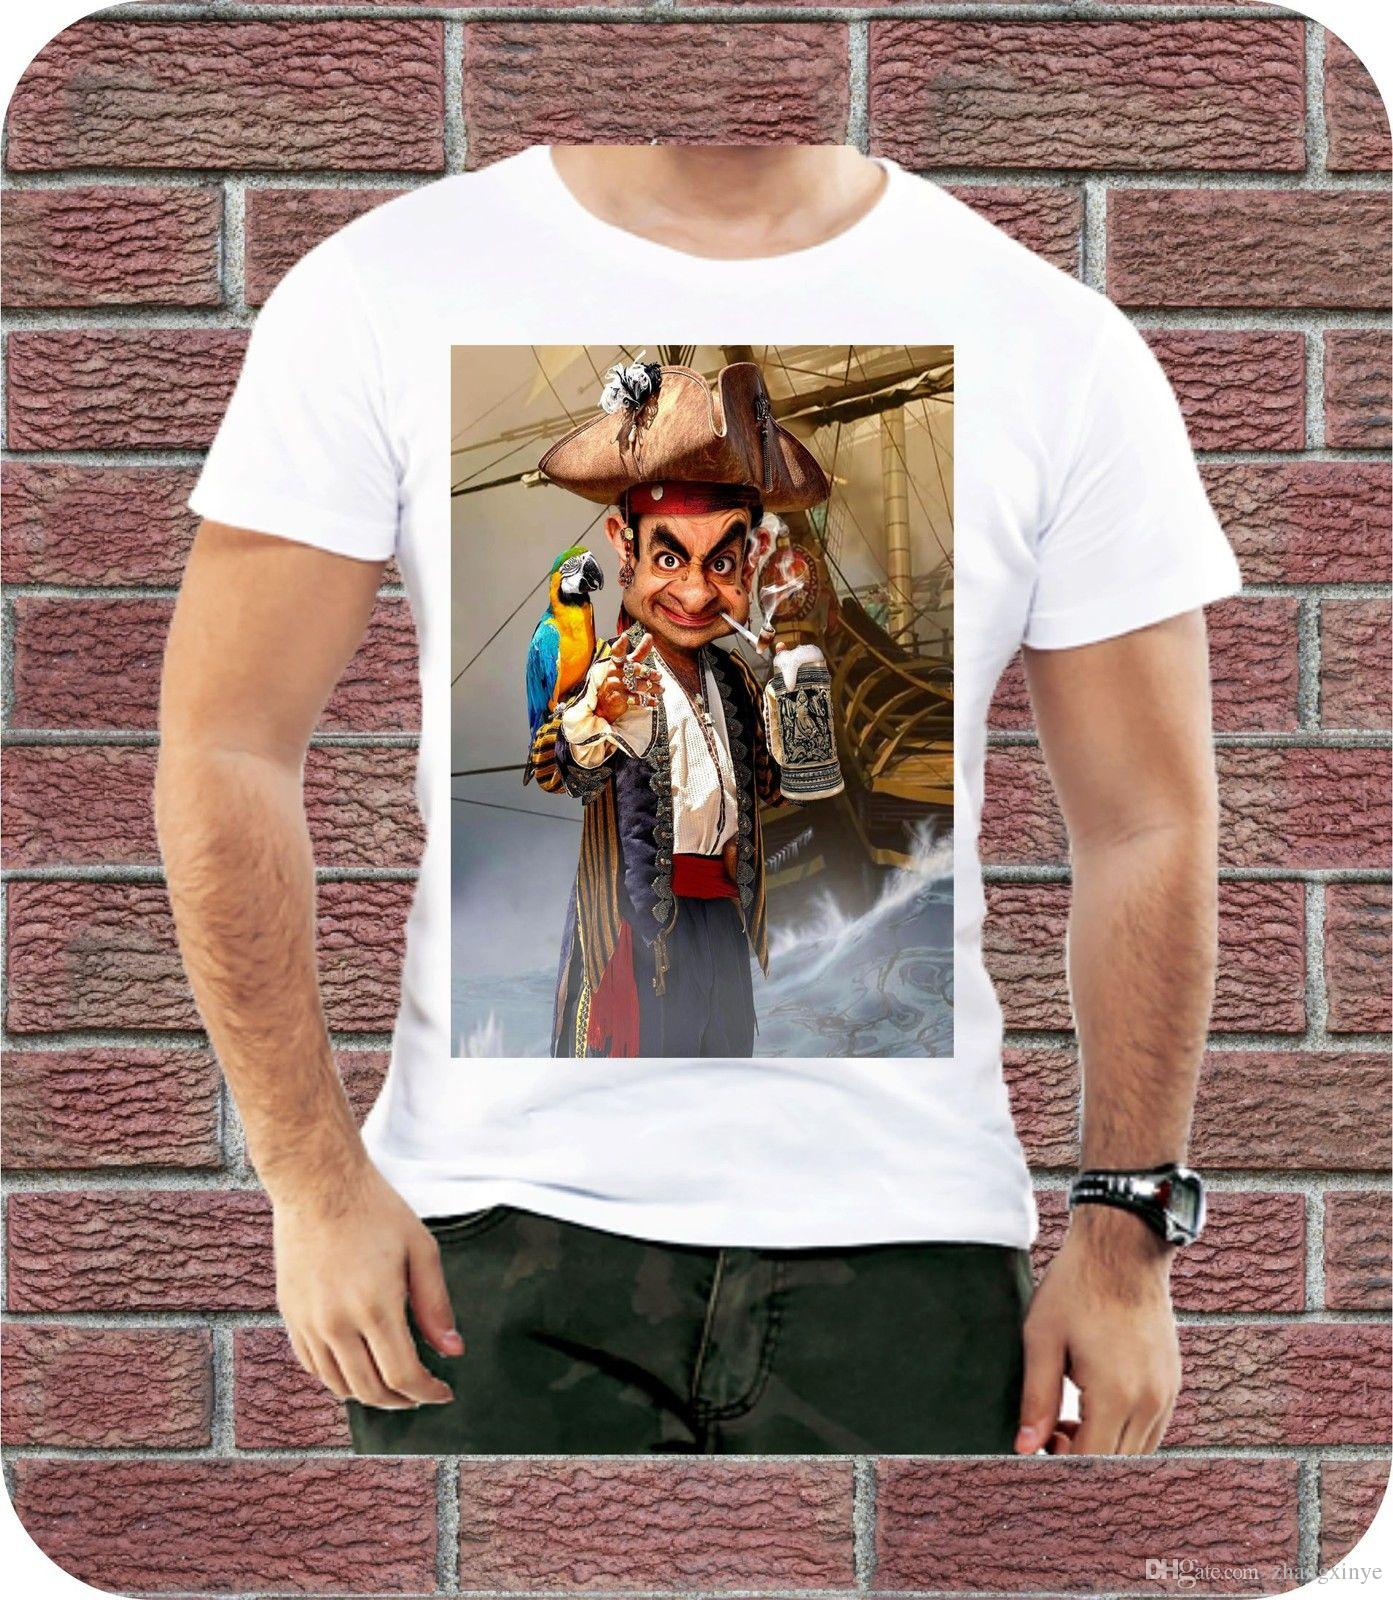 21a498682 Short Sleeves 100% Cotton Pirate Mr Bean Parrot Funny Design Men T Shirt  Casual Trendy Gift Christmas Trendy Mens T Shirts T Shirt Best From  Zhangxinye, ...